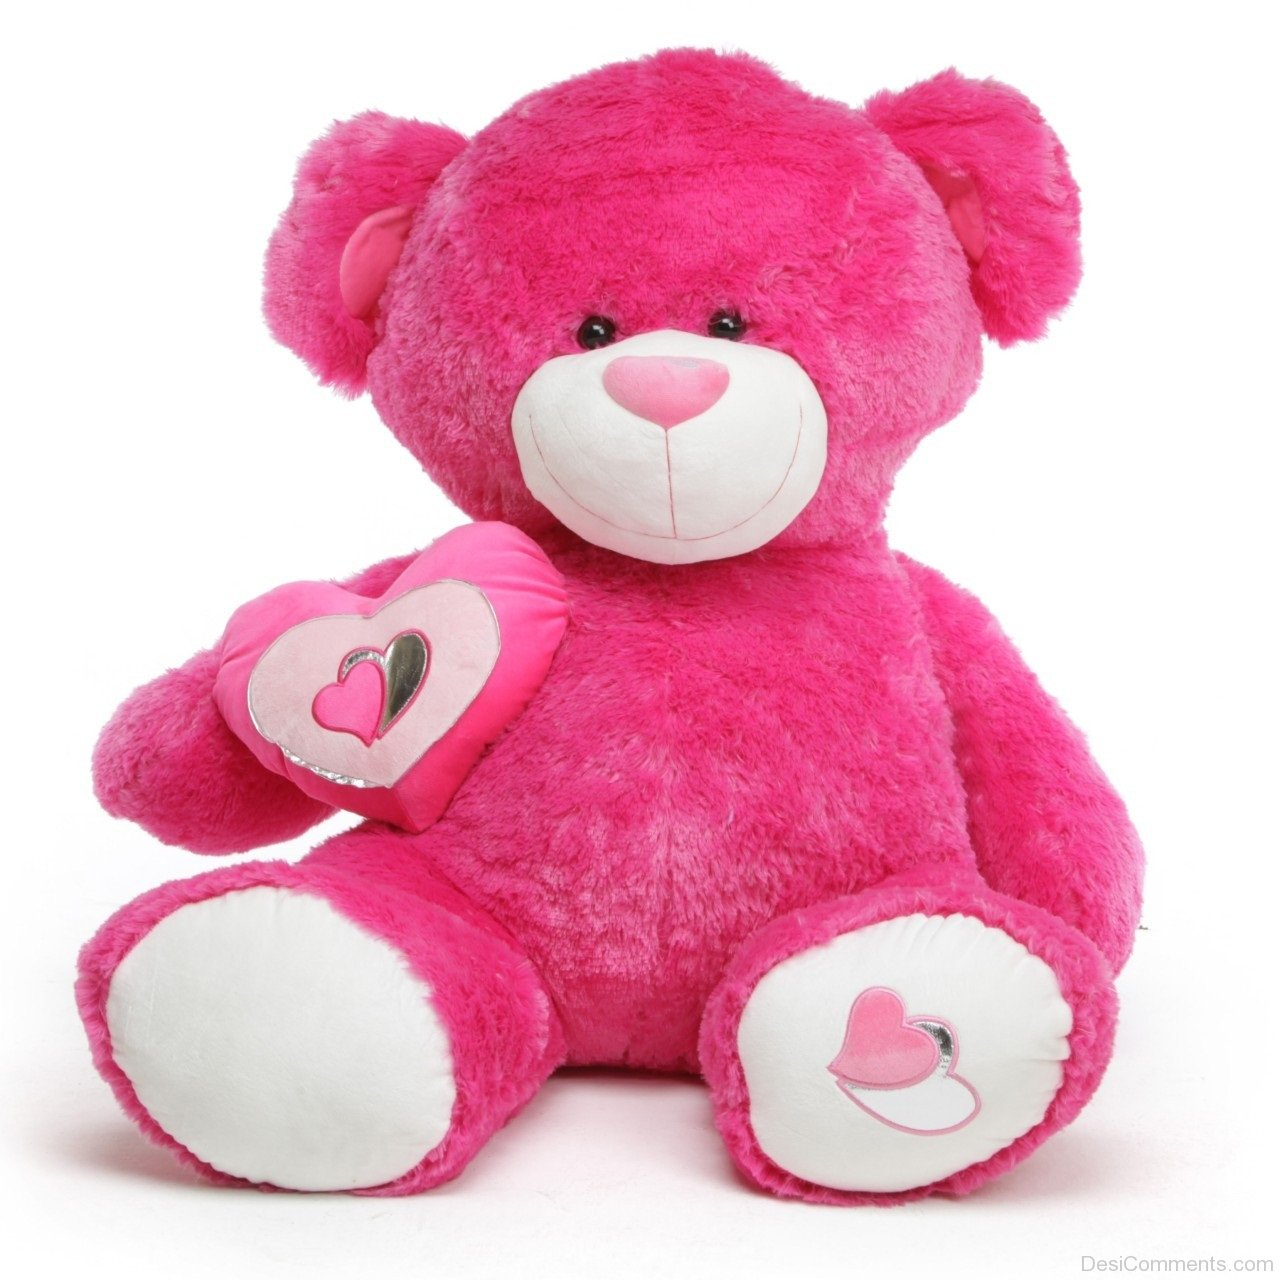 Sad Love Quotes Mobile Wallpapers Pink Teddy Bear Image Desicomments Com